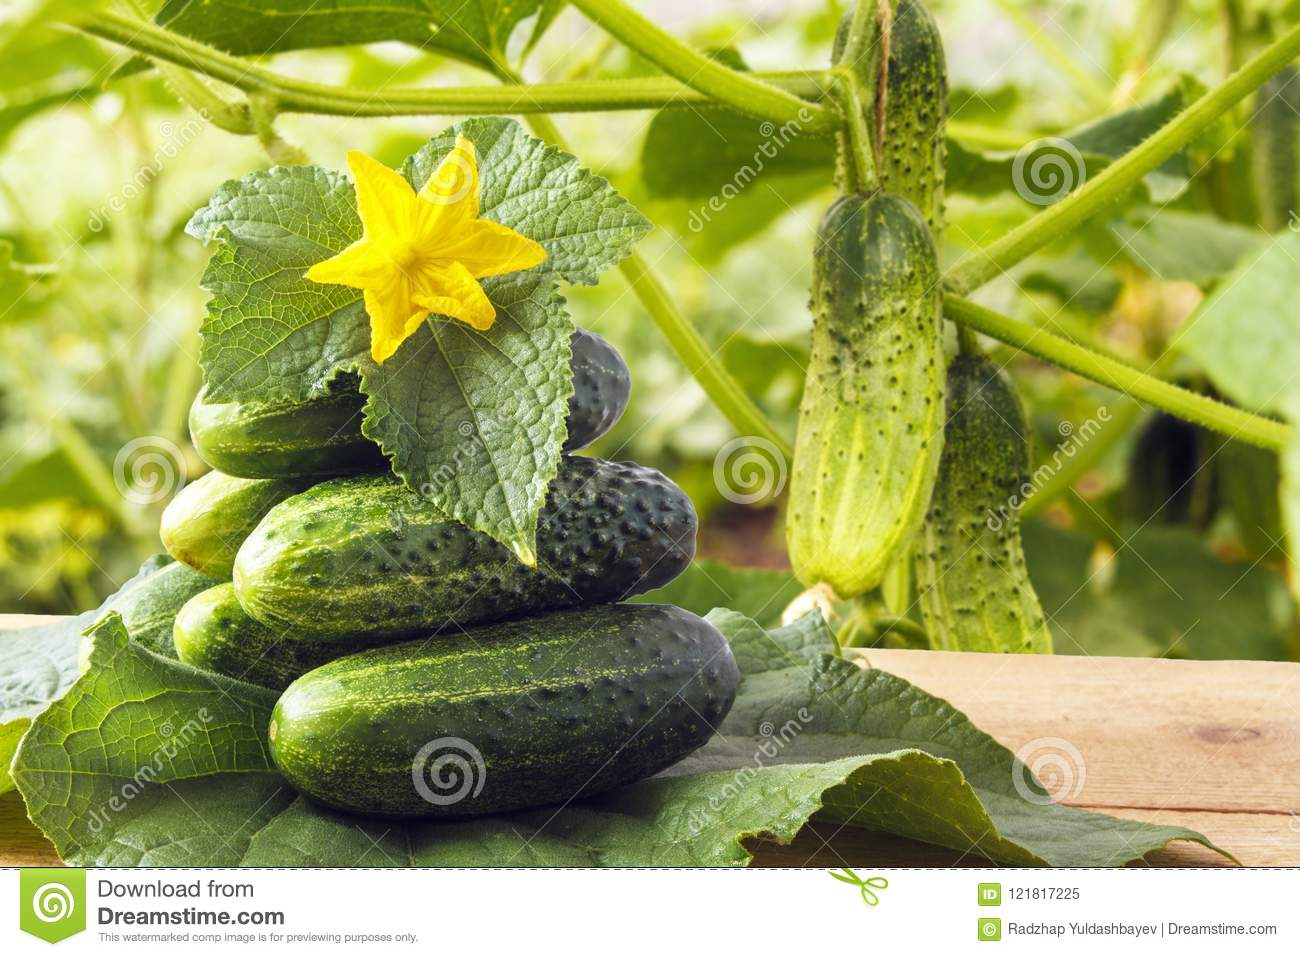 Fresh Organic Gherkins And Yellow Flowers With Green Leaves On